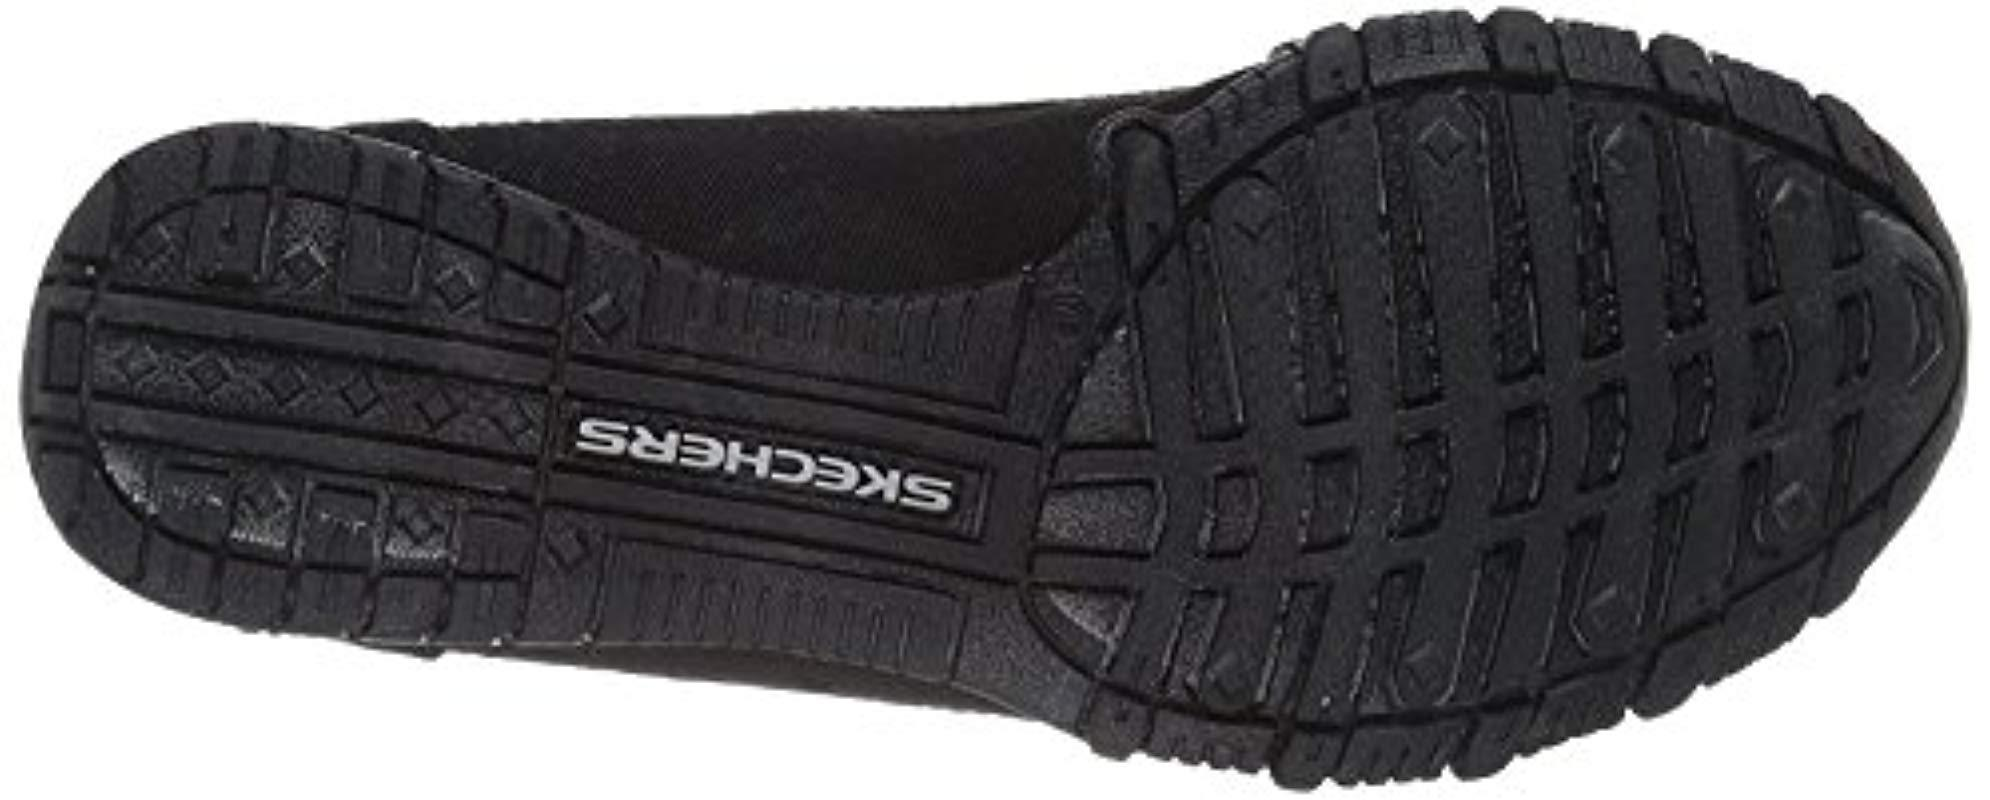 skechers foam